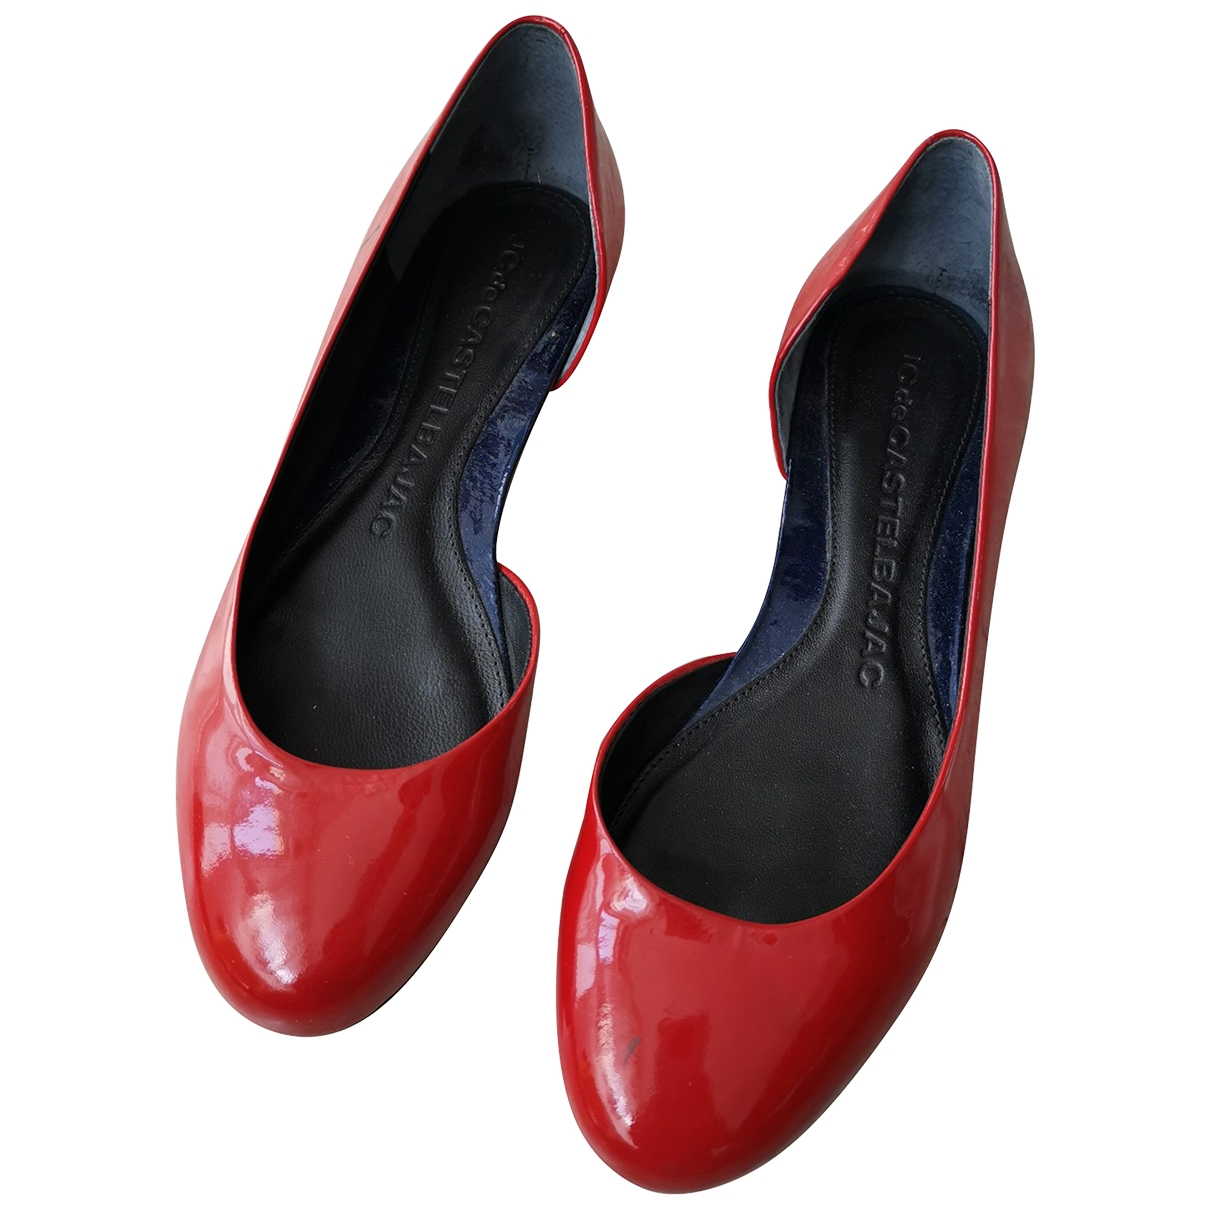 Jc De Castelbajac \N Red Patent leather Ballet flats for Women 39 EU